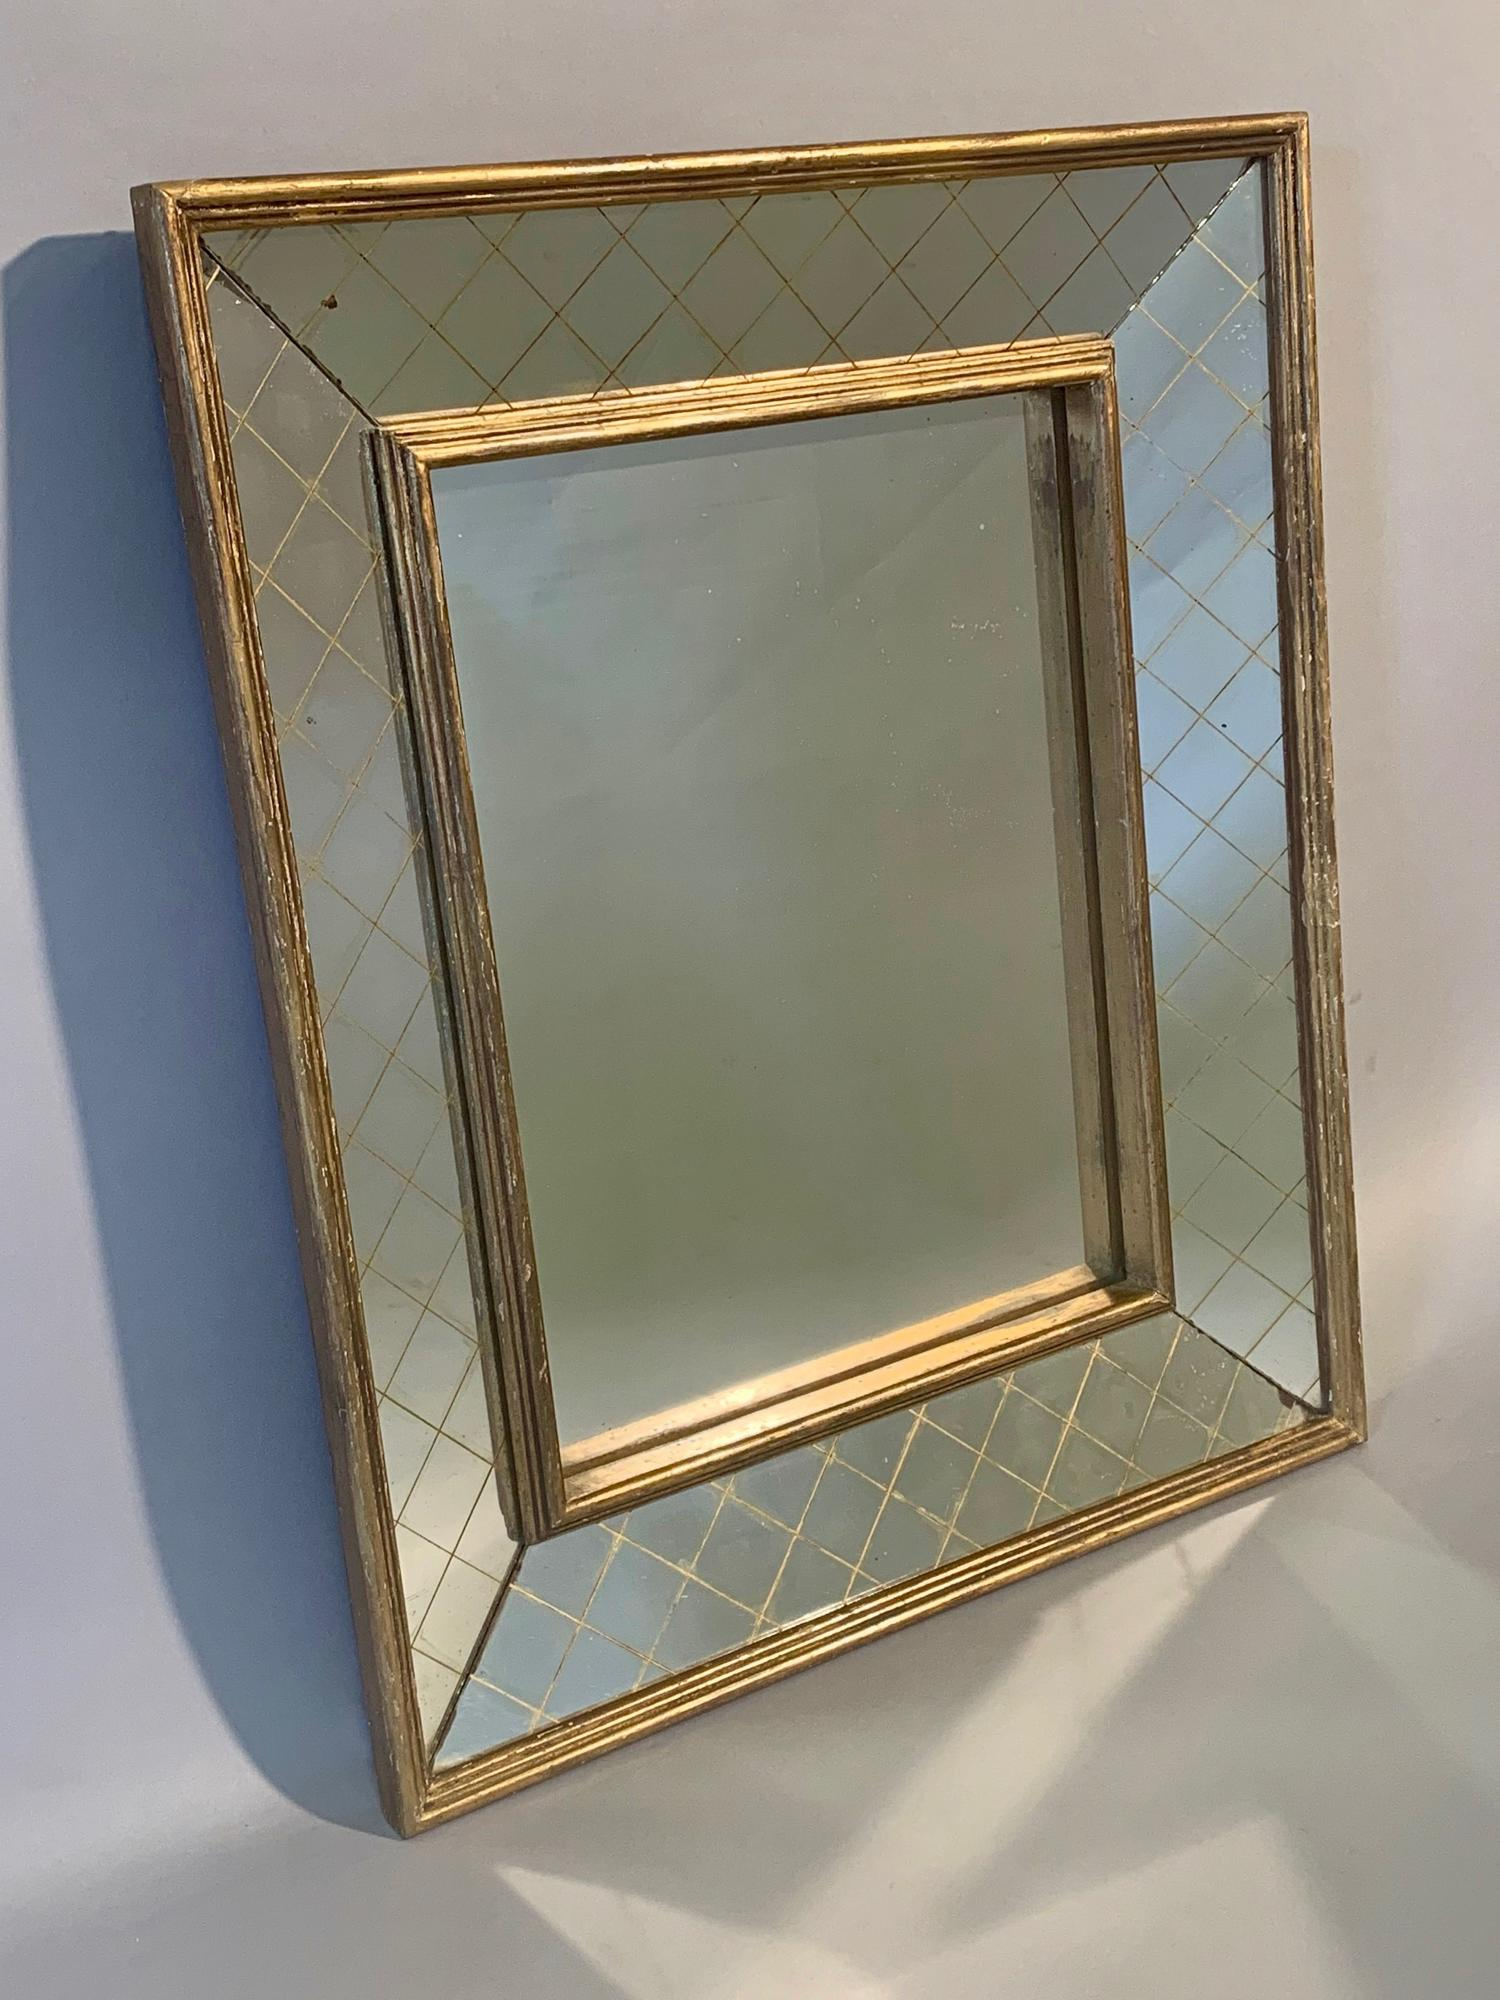 Gilt gesso criss cross frame mirror